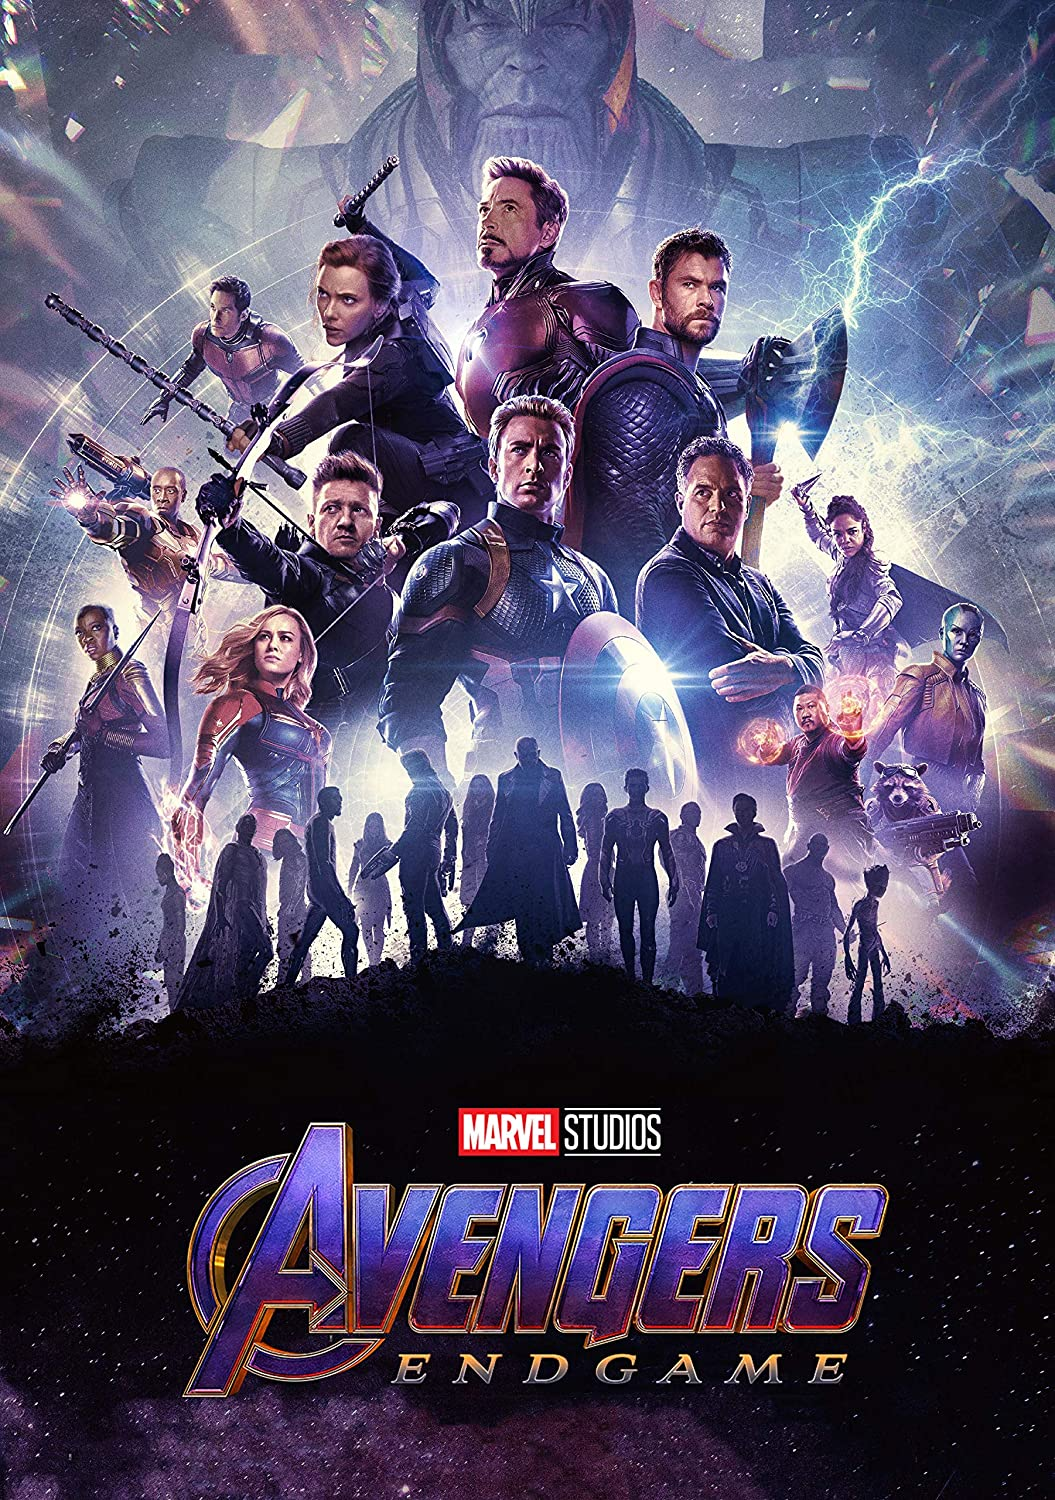 Avengers Endgame Poster - International Art - 2019 Marvel Movie (16x25) inch Poster Print Limited Edition Print frameless art gift 40 x 63 cm